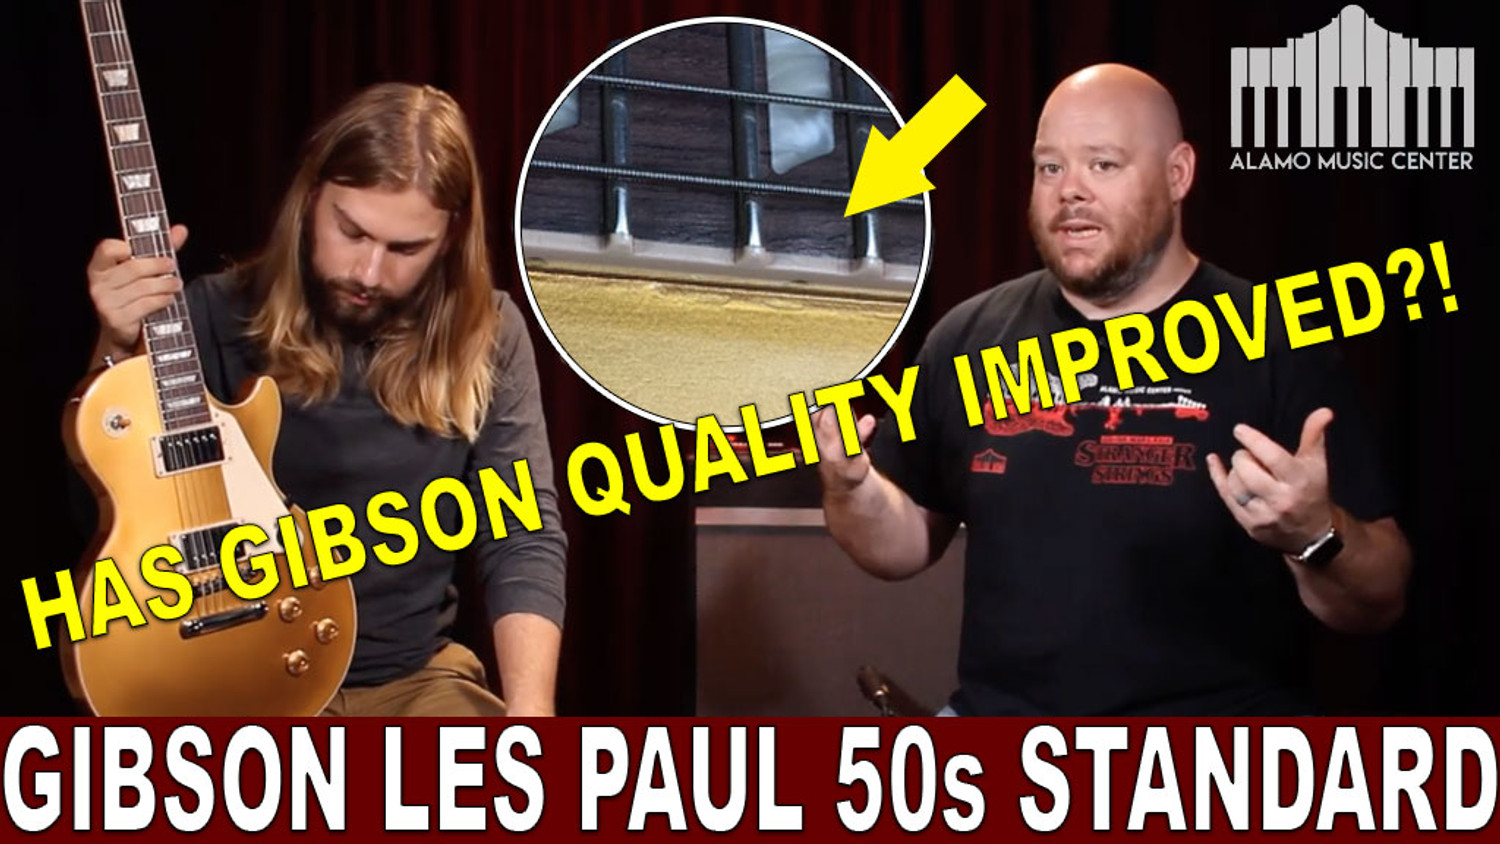 The new Gibson Les Paul 50s Standard - Has Gibson quality improved?